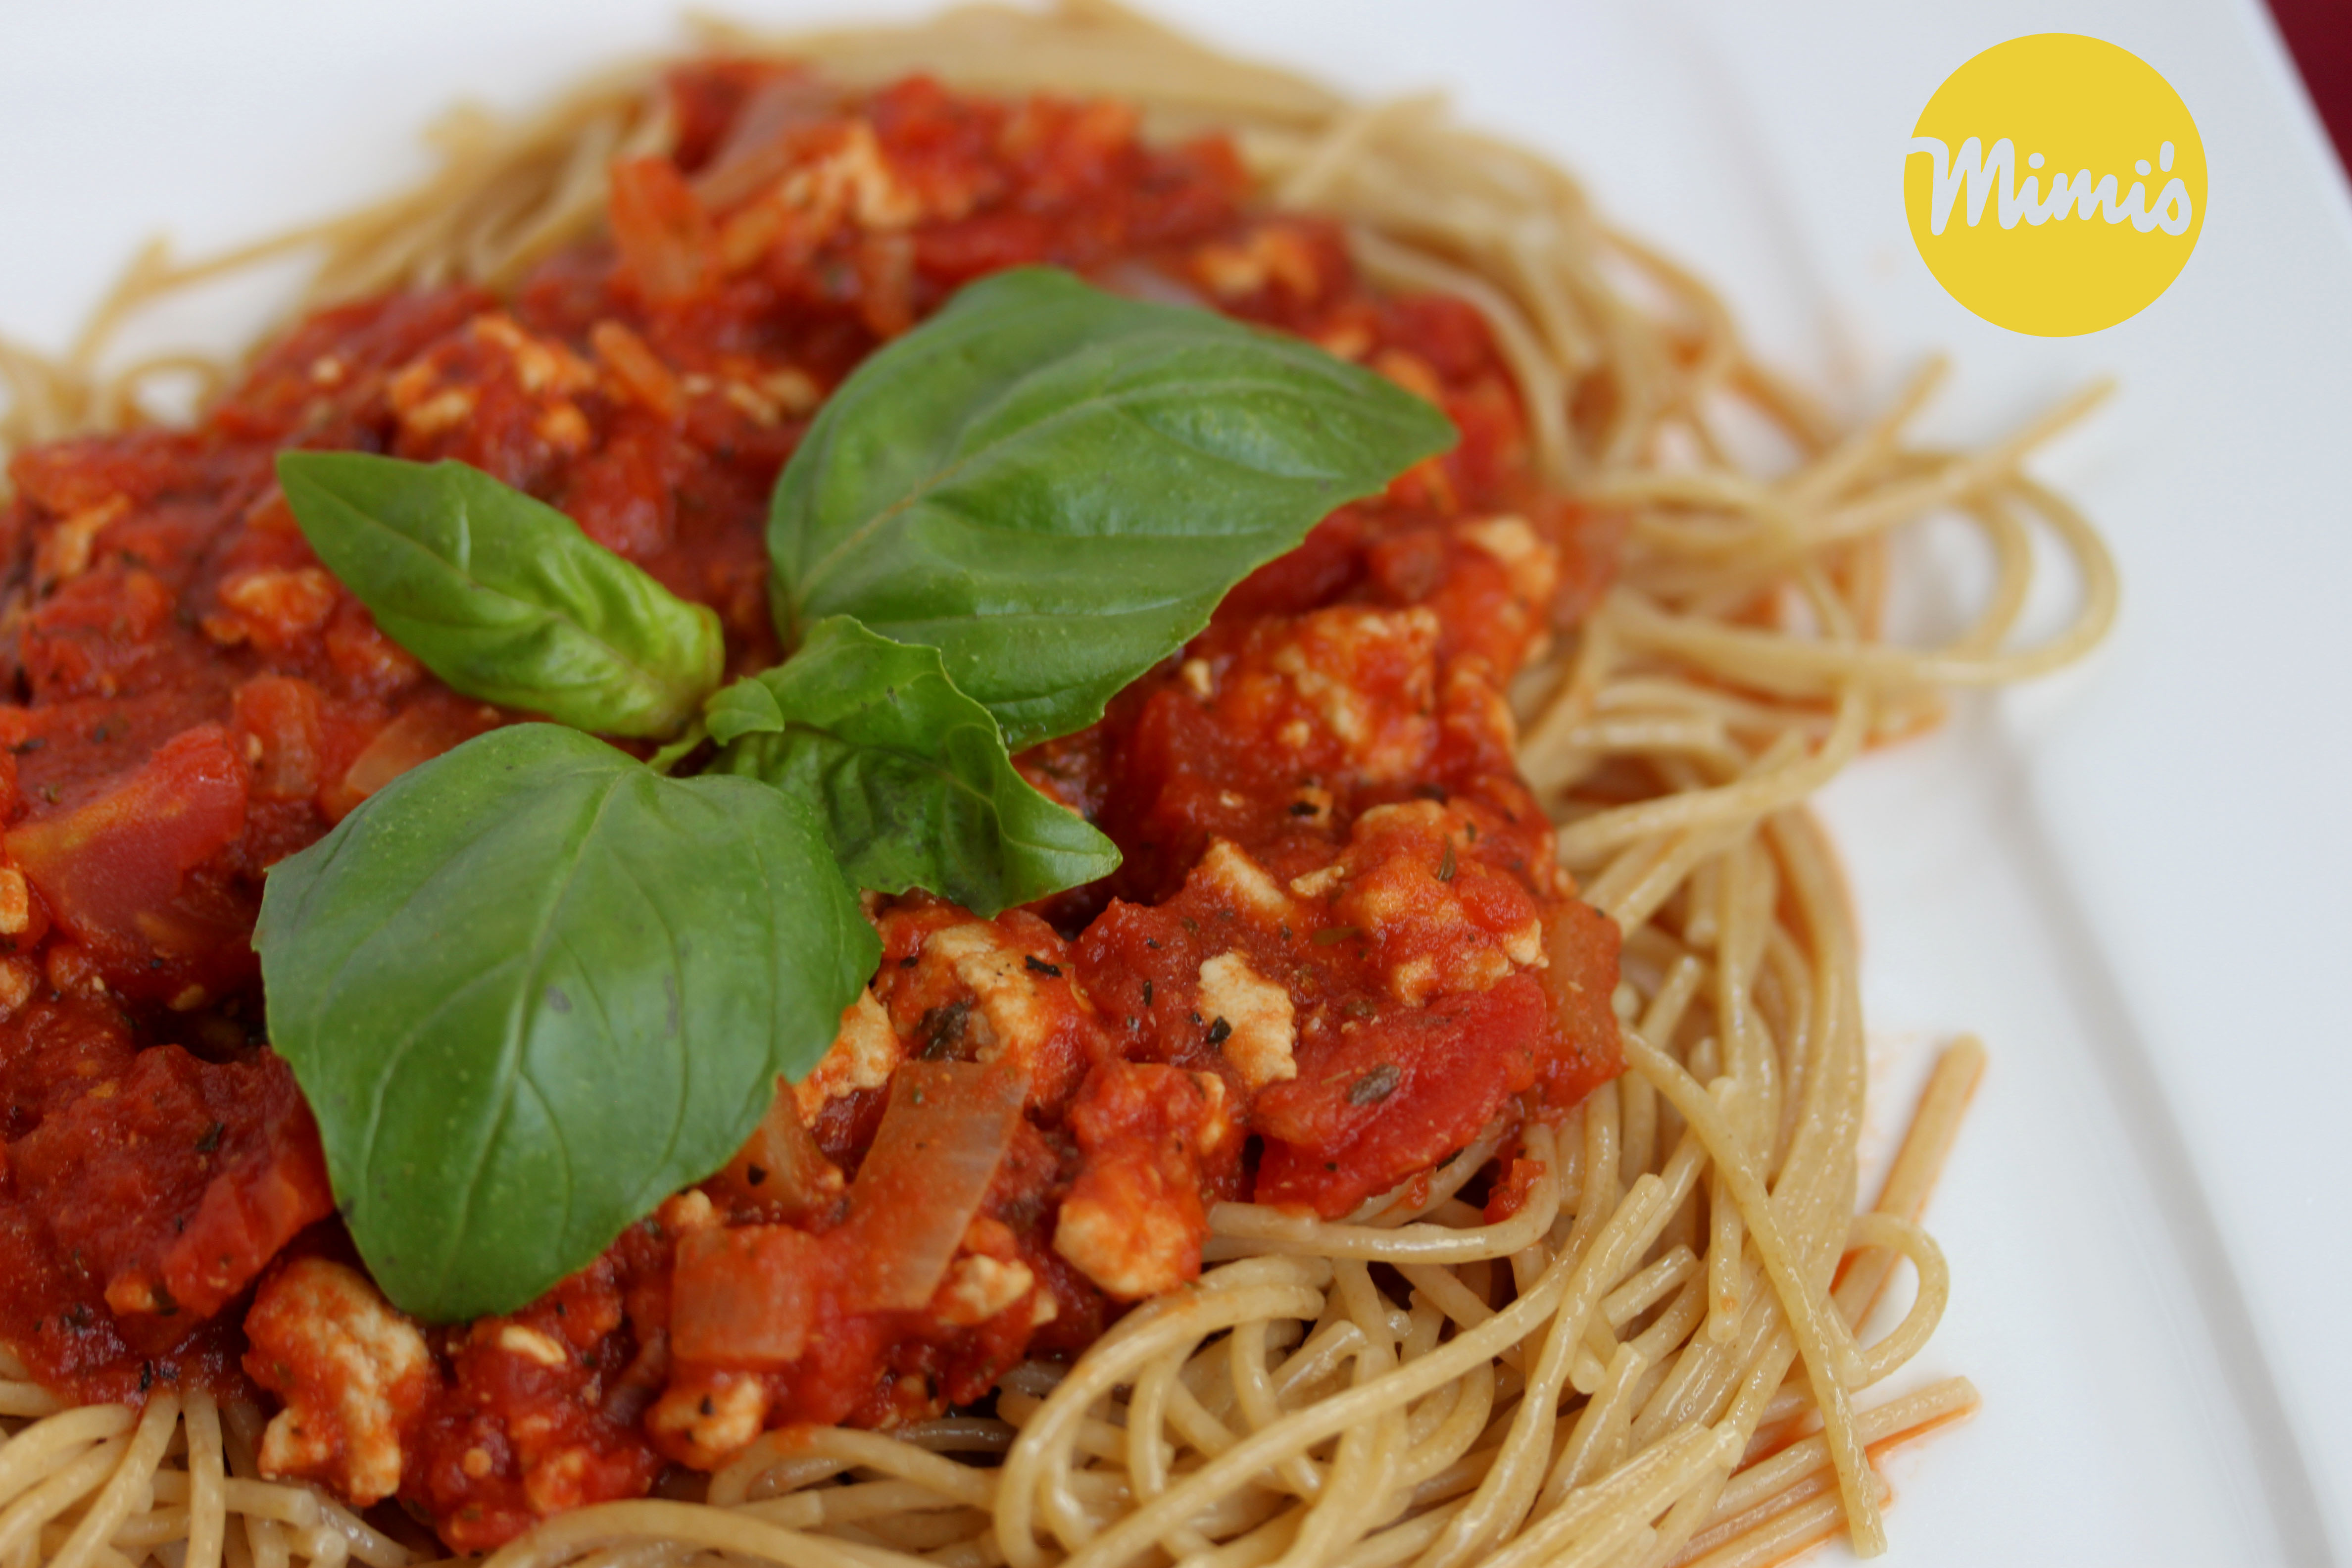 Fit Homemade Spaghetti Sauce - Mimi's Fit Foods